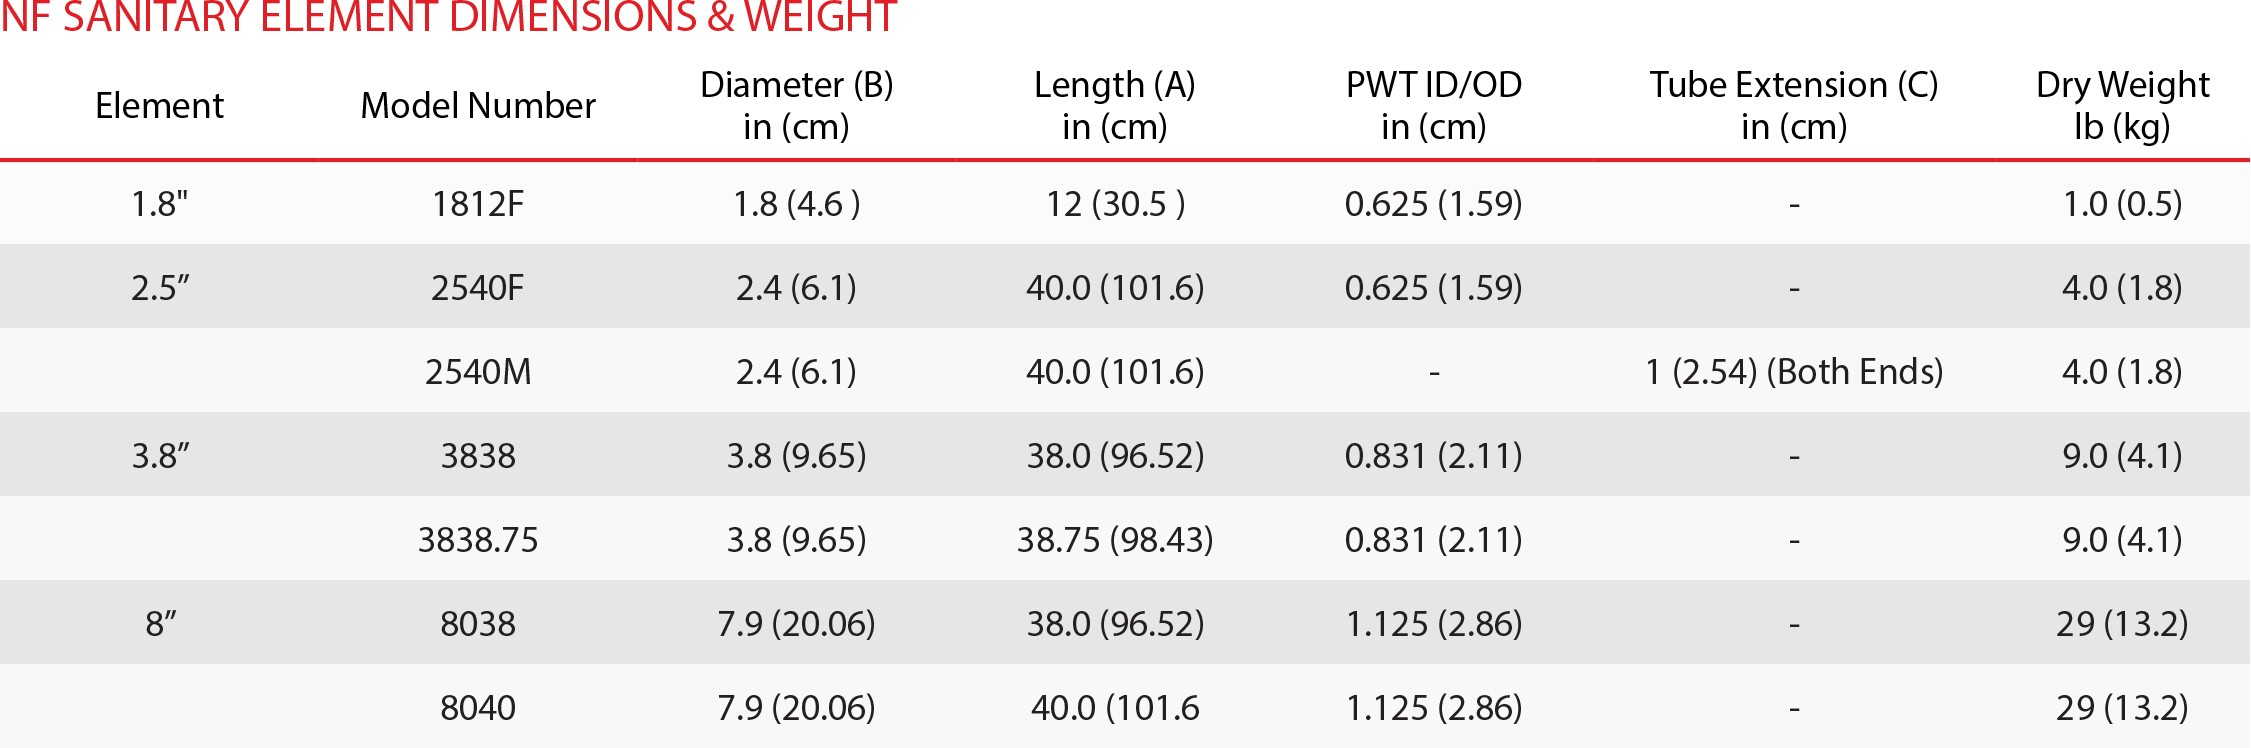 NF Element Dimensions & Weight